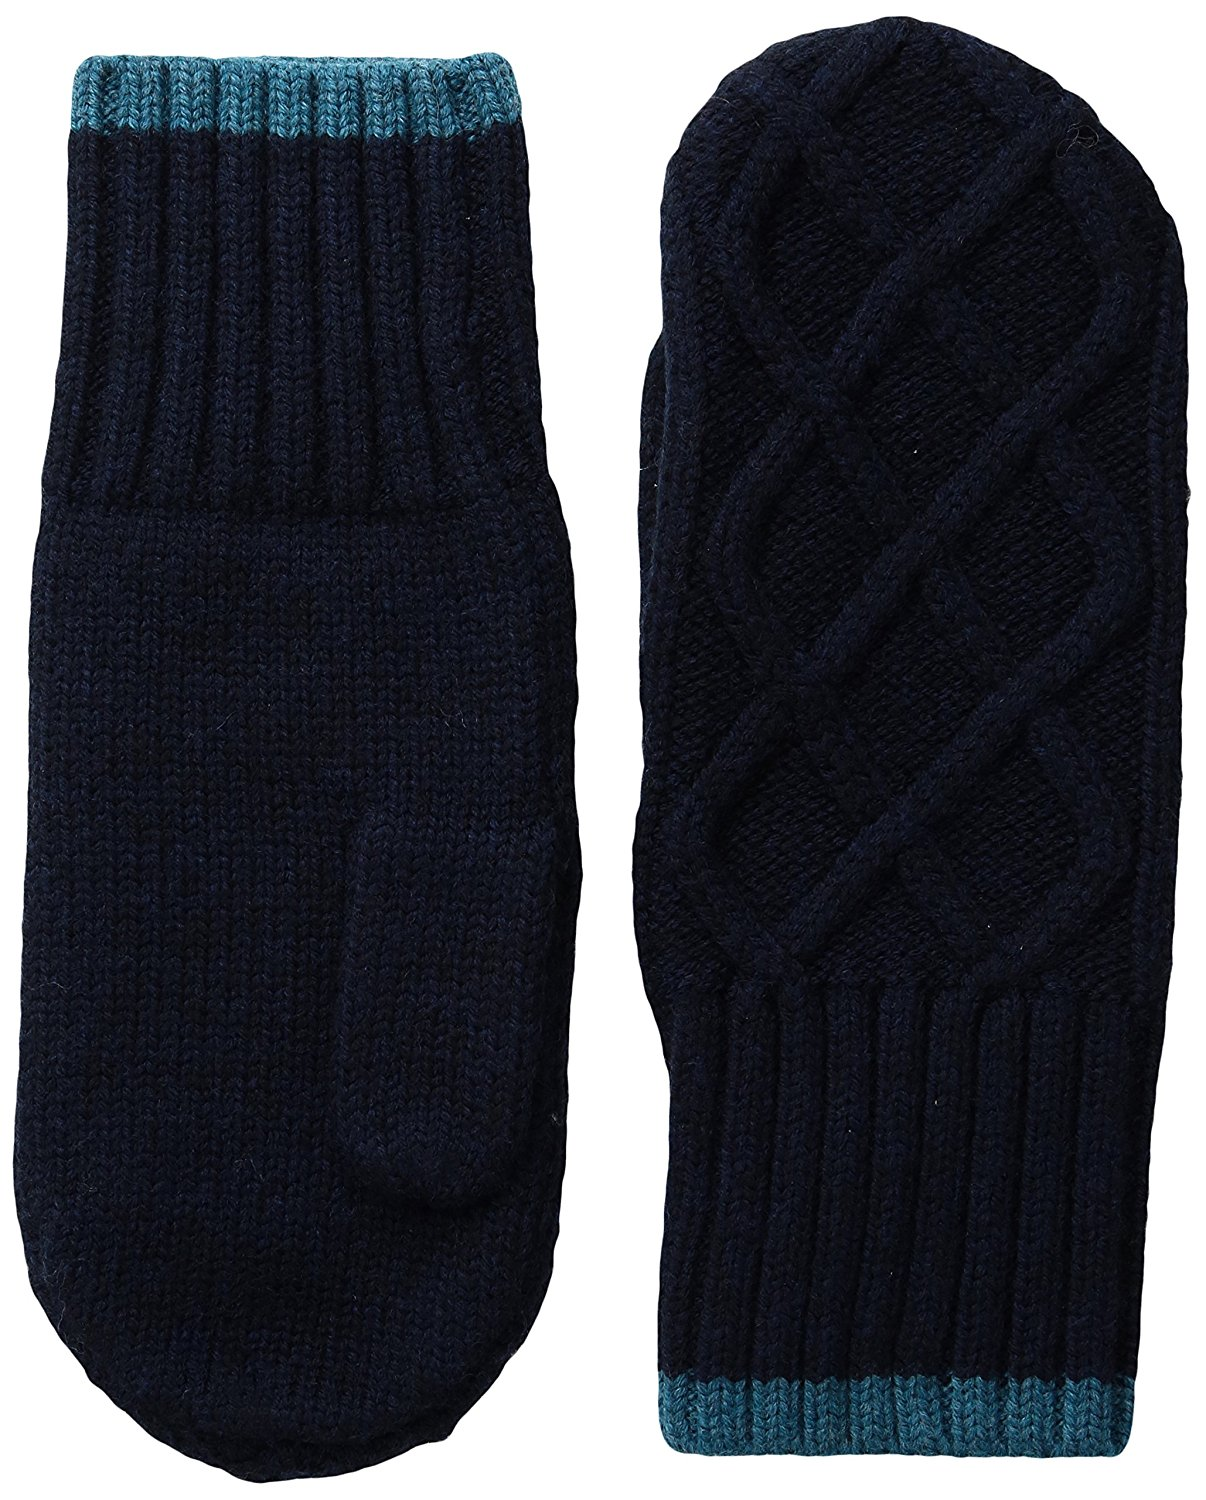 Ibex Outdoor Clothing Cable Sweater Mitten